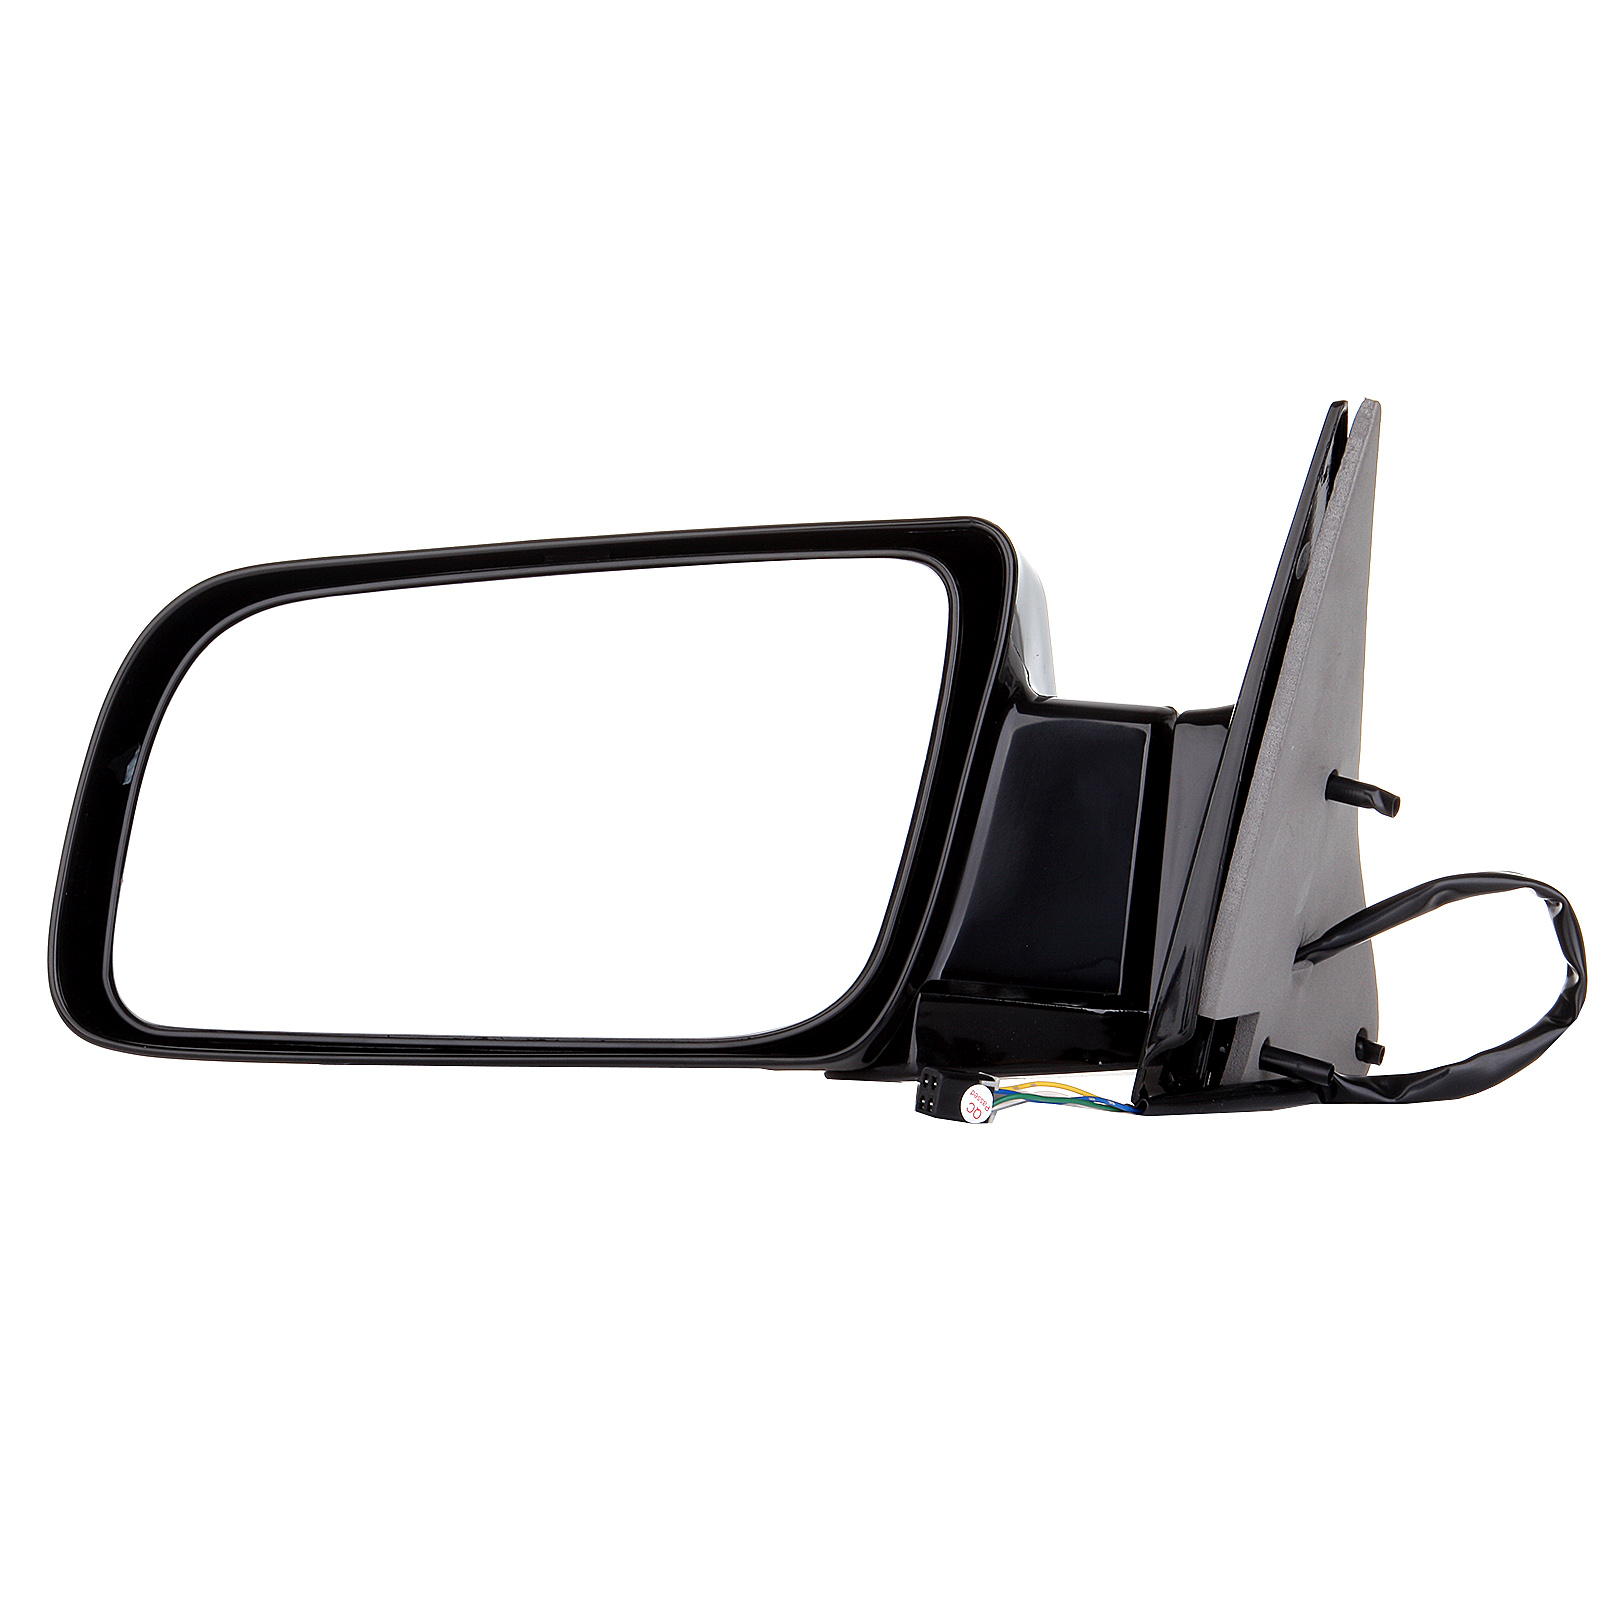 Eccpp mirror for chevy gmc suburban c k 1500 2500 3500 tahoe yukon manual folding